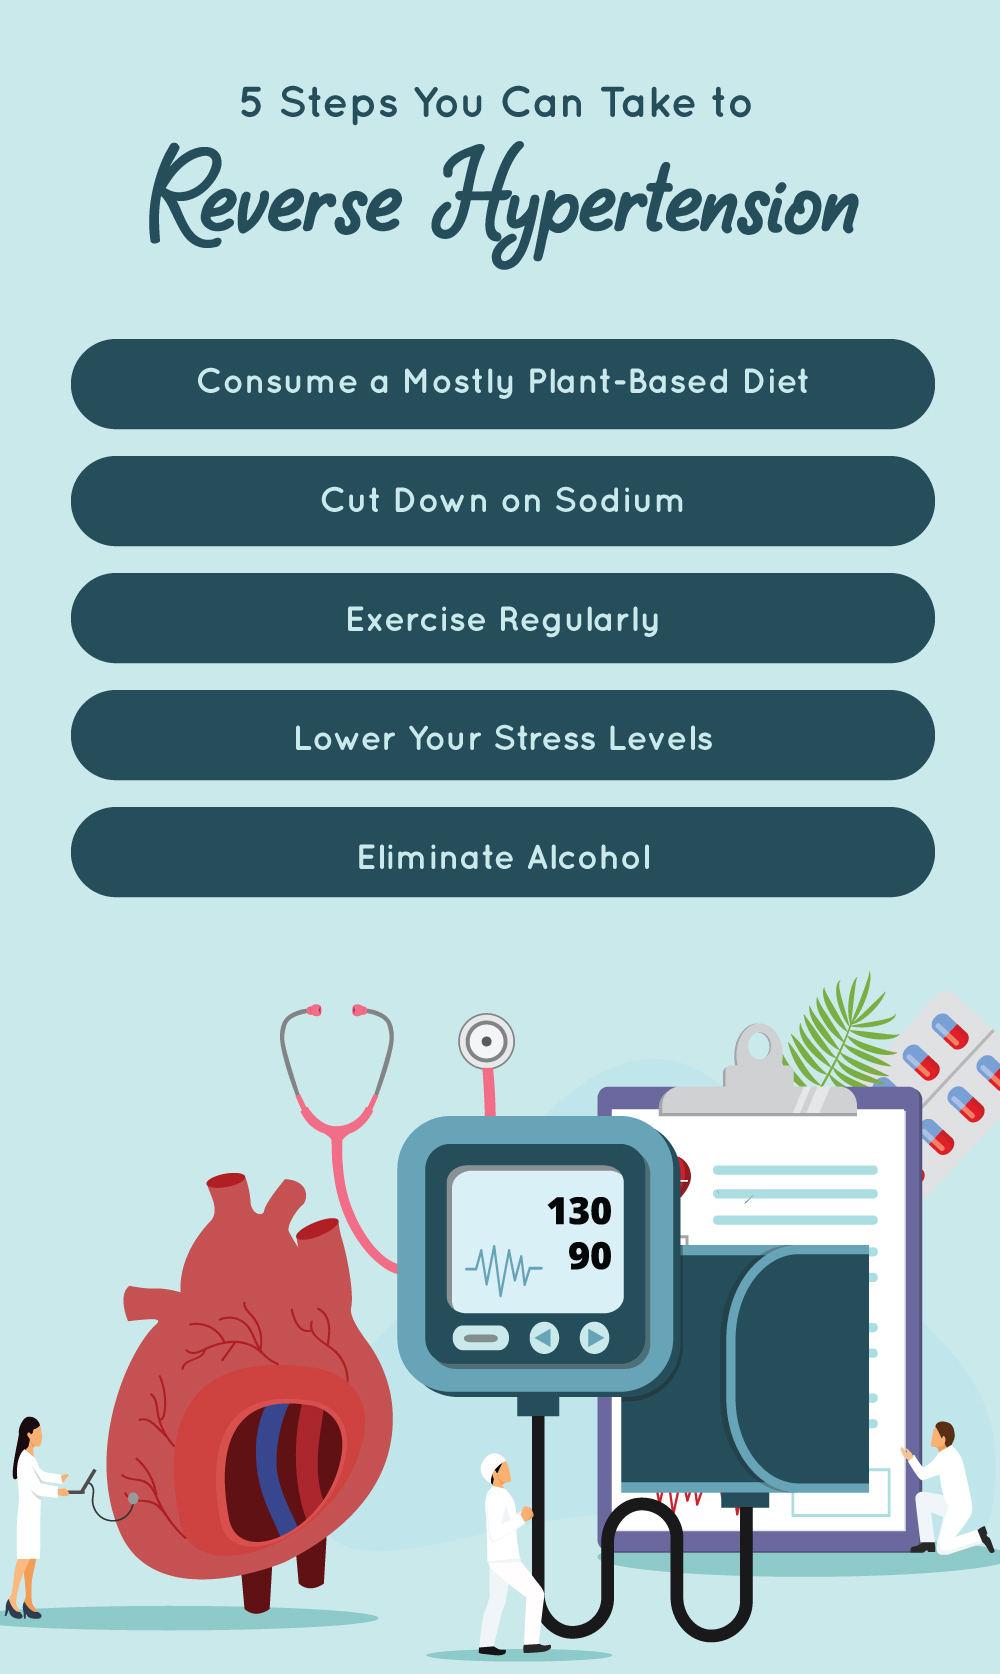 4 Steps You Can Take to Reverse Hypertension